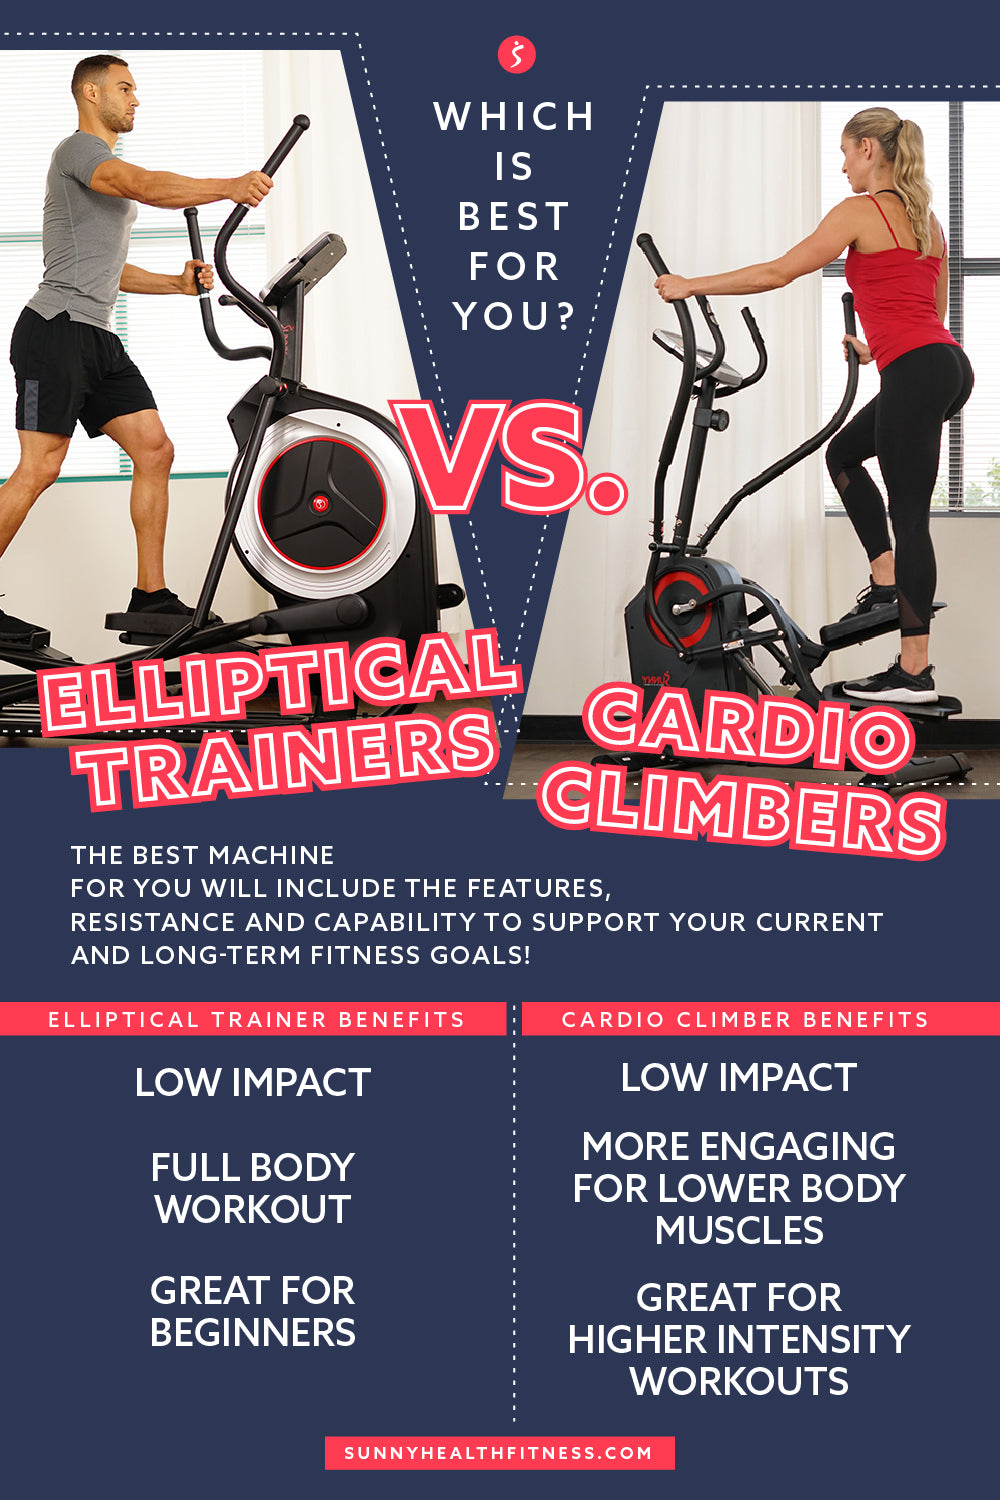 Elliptical Trainers vs. Cardio Climbers Infographic